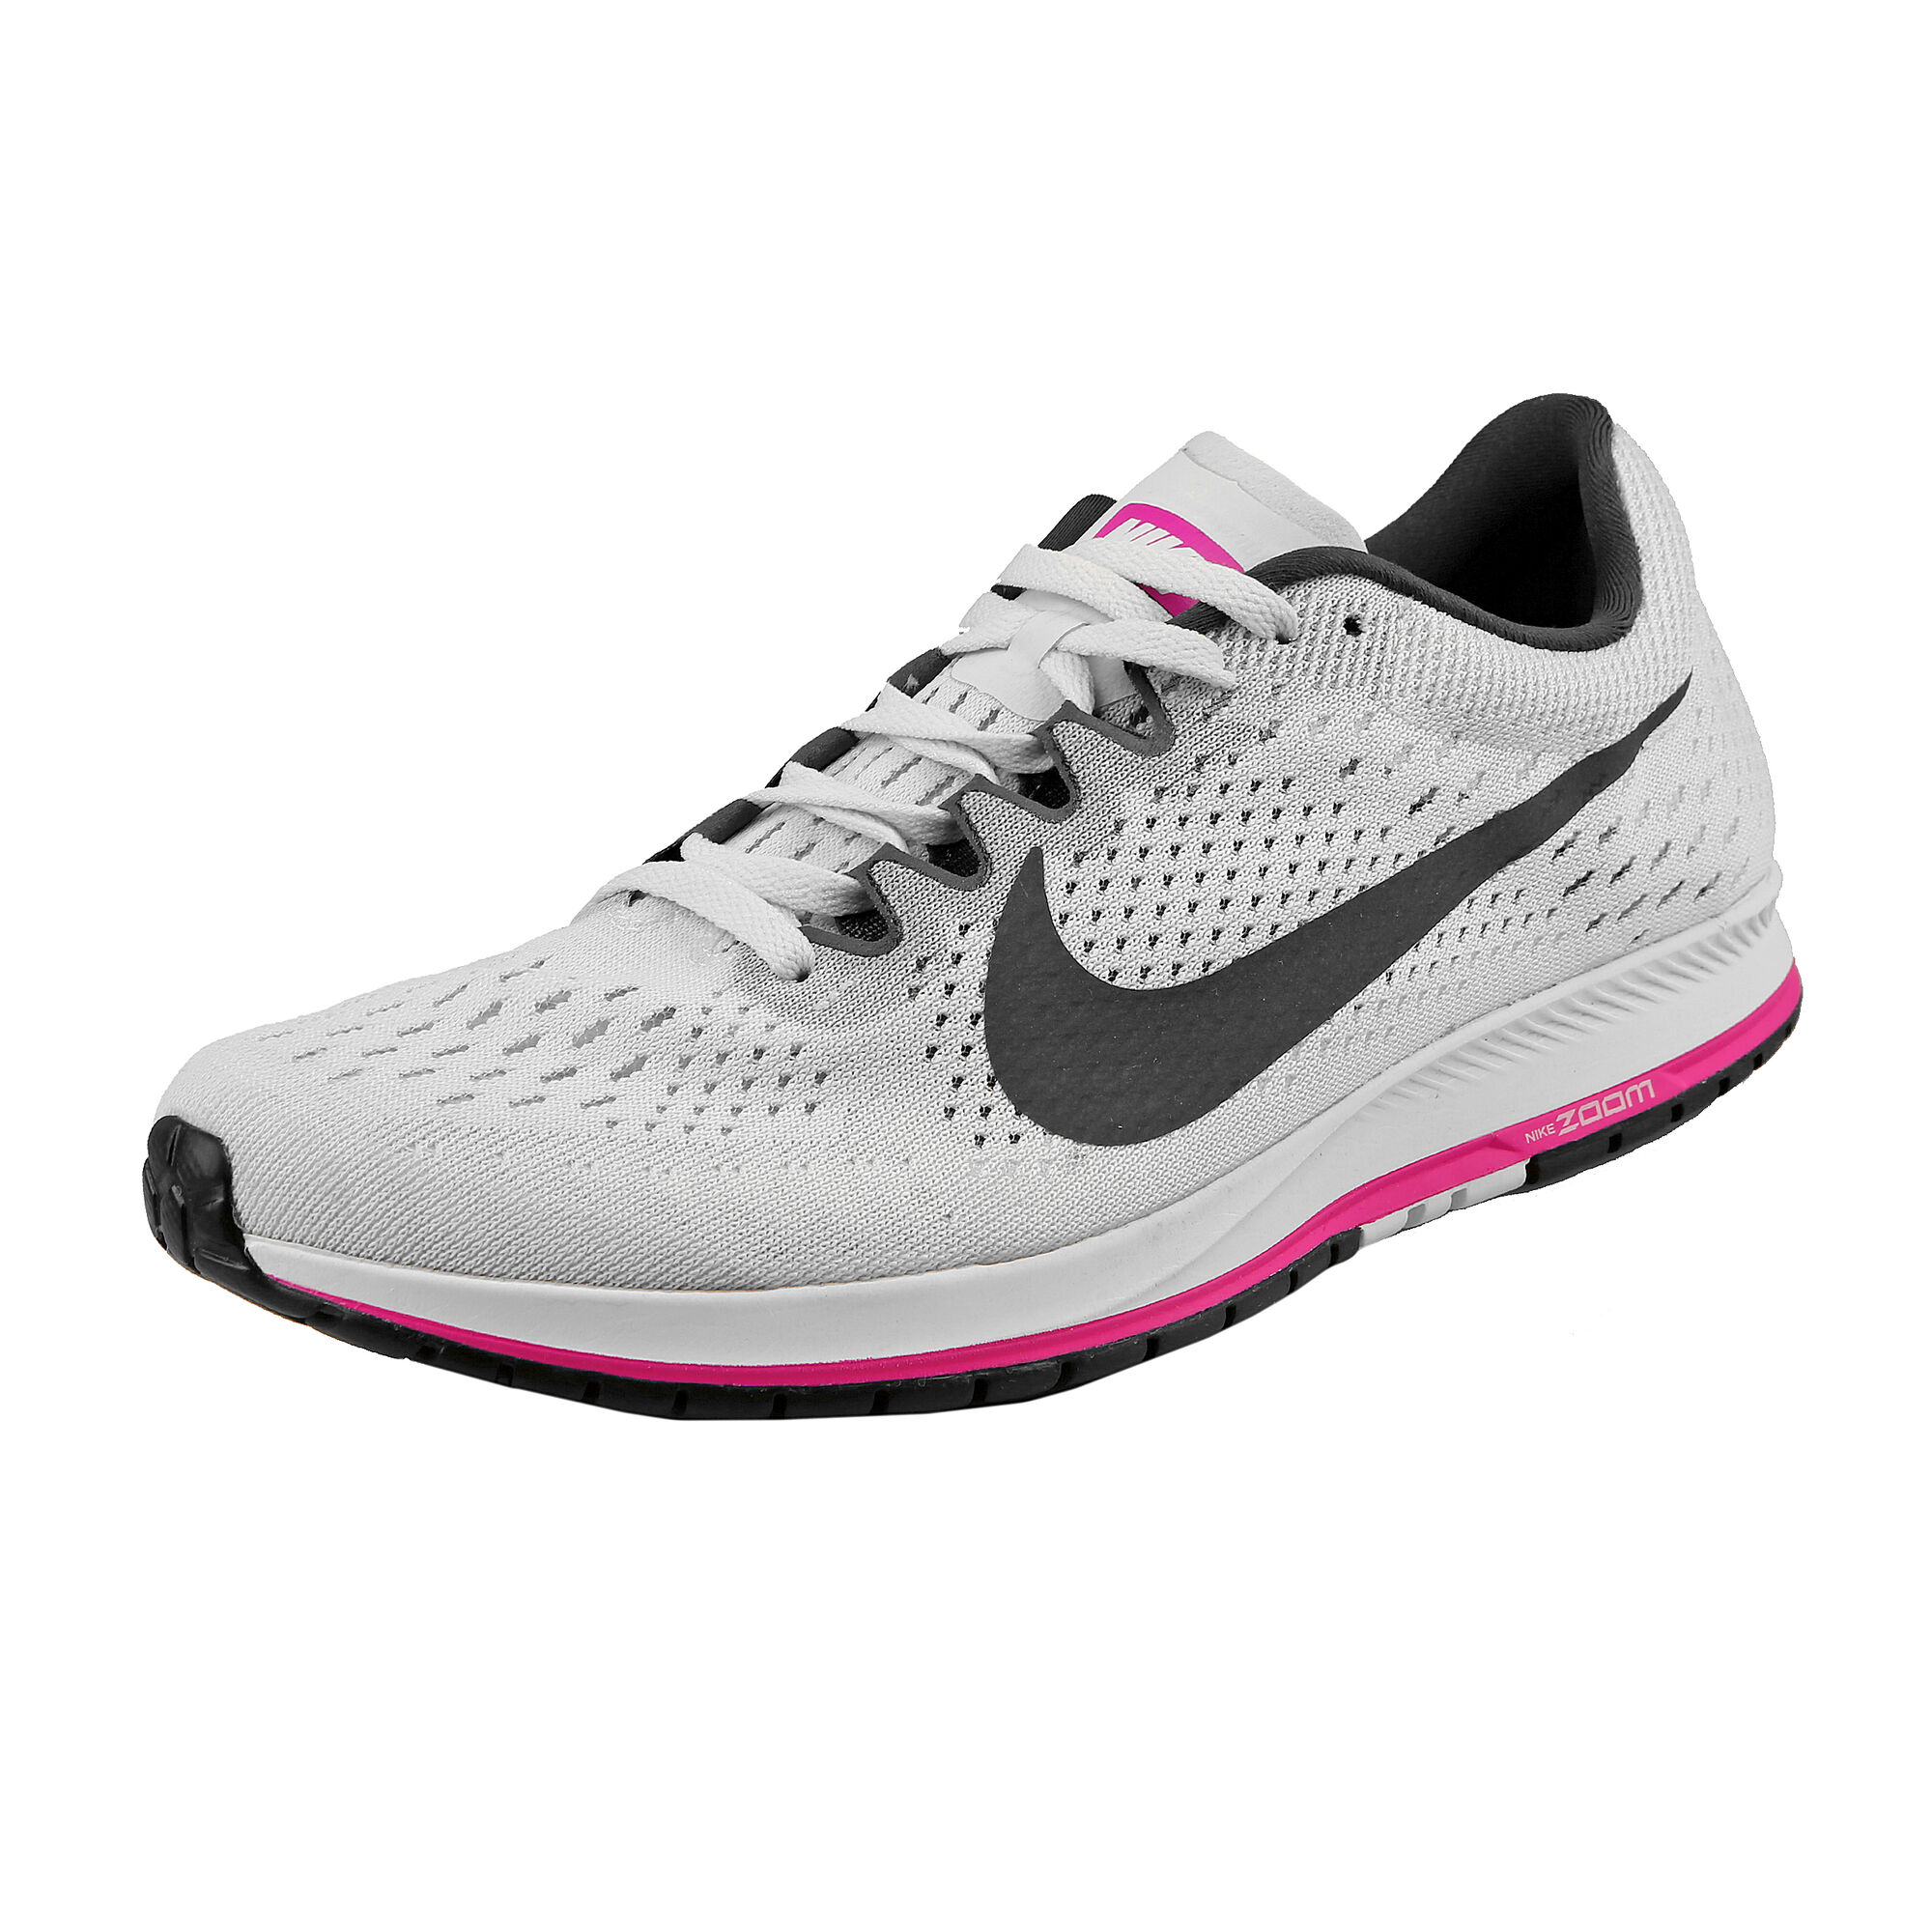 a5ce4e96a1d9 buy Nike Zoom Streak 6 Competition Running Shoe - Lightgrey